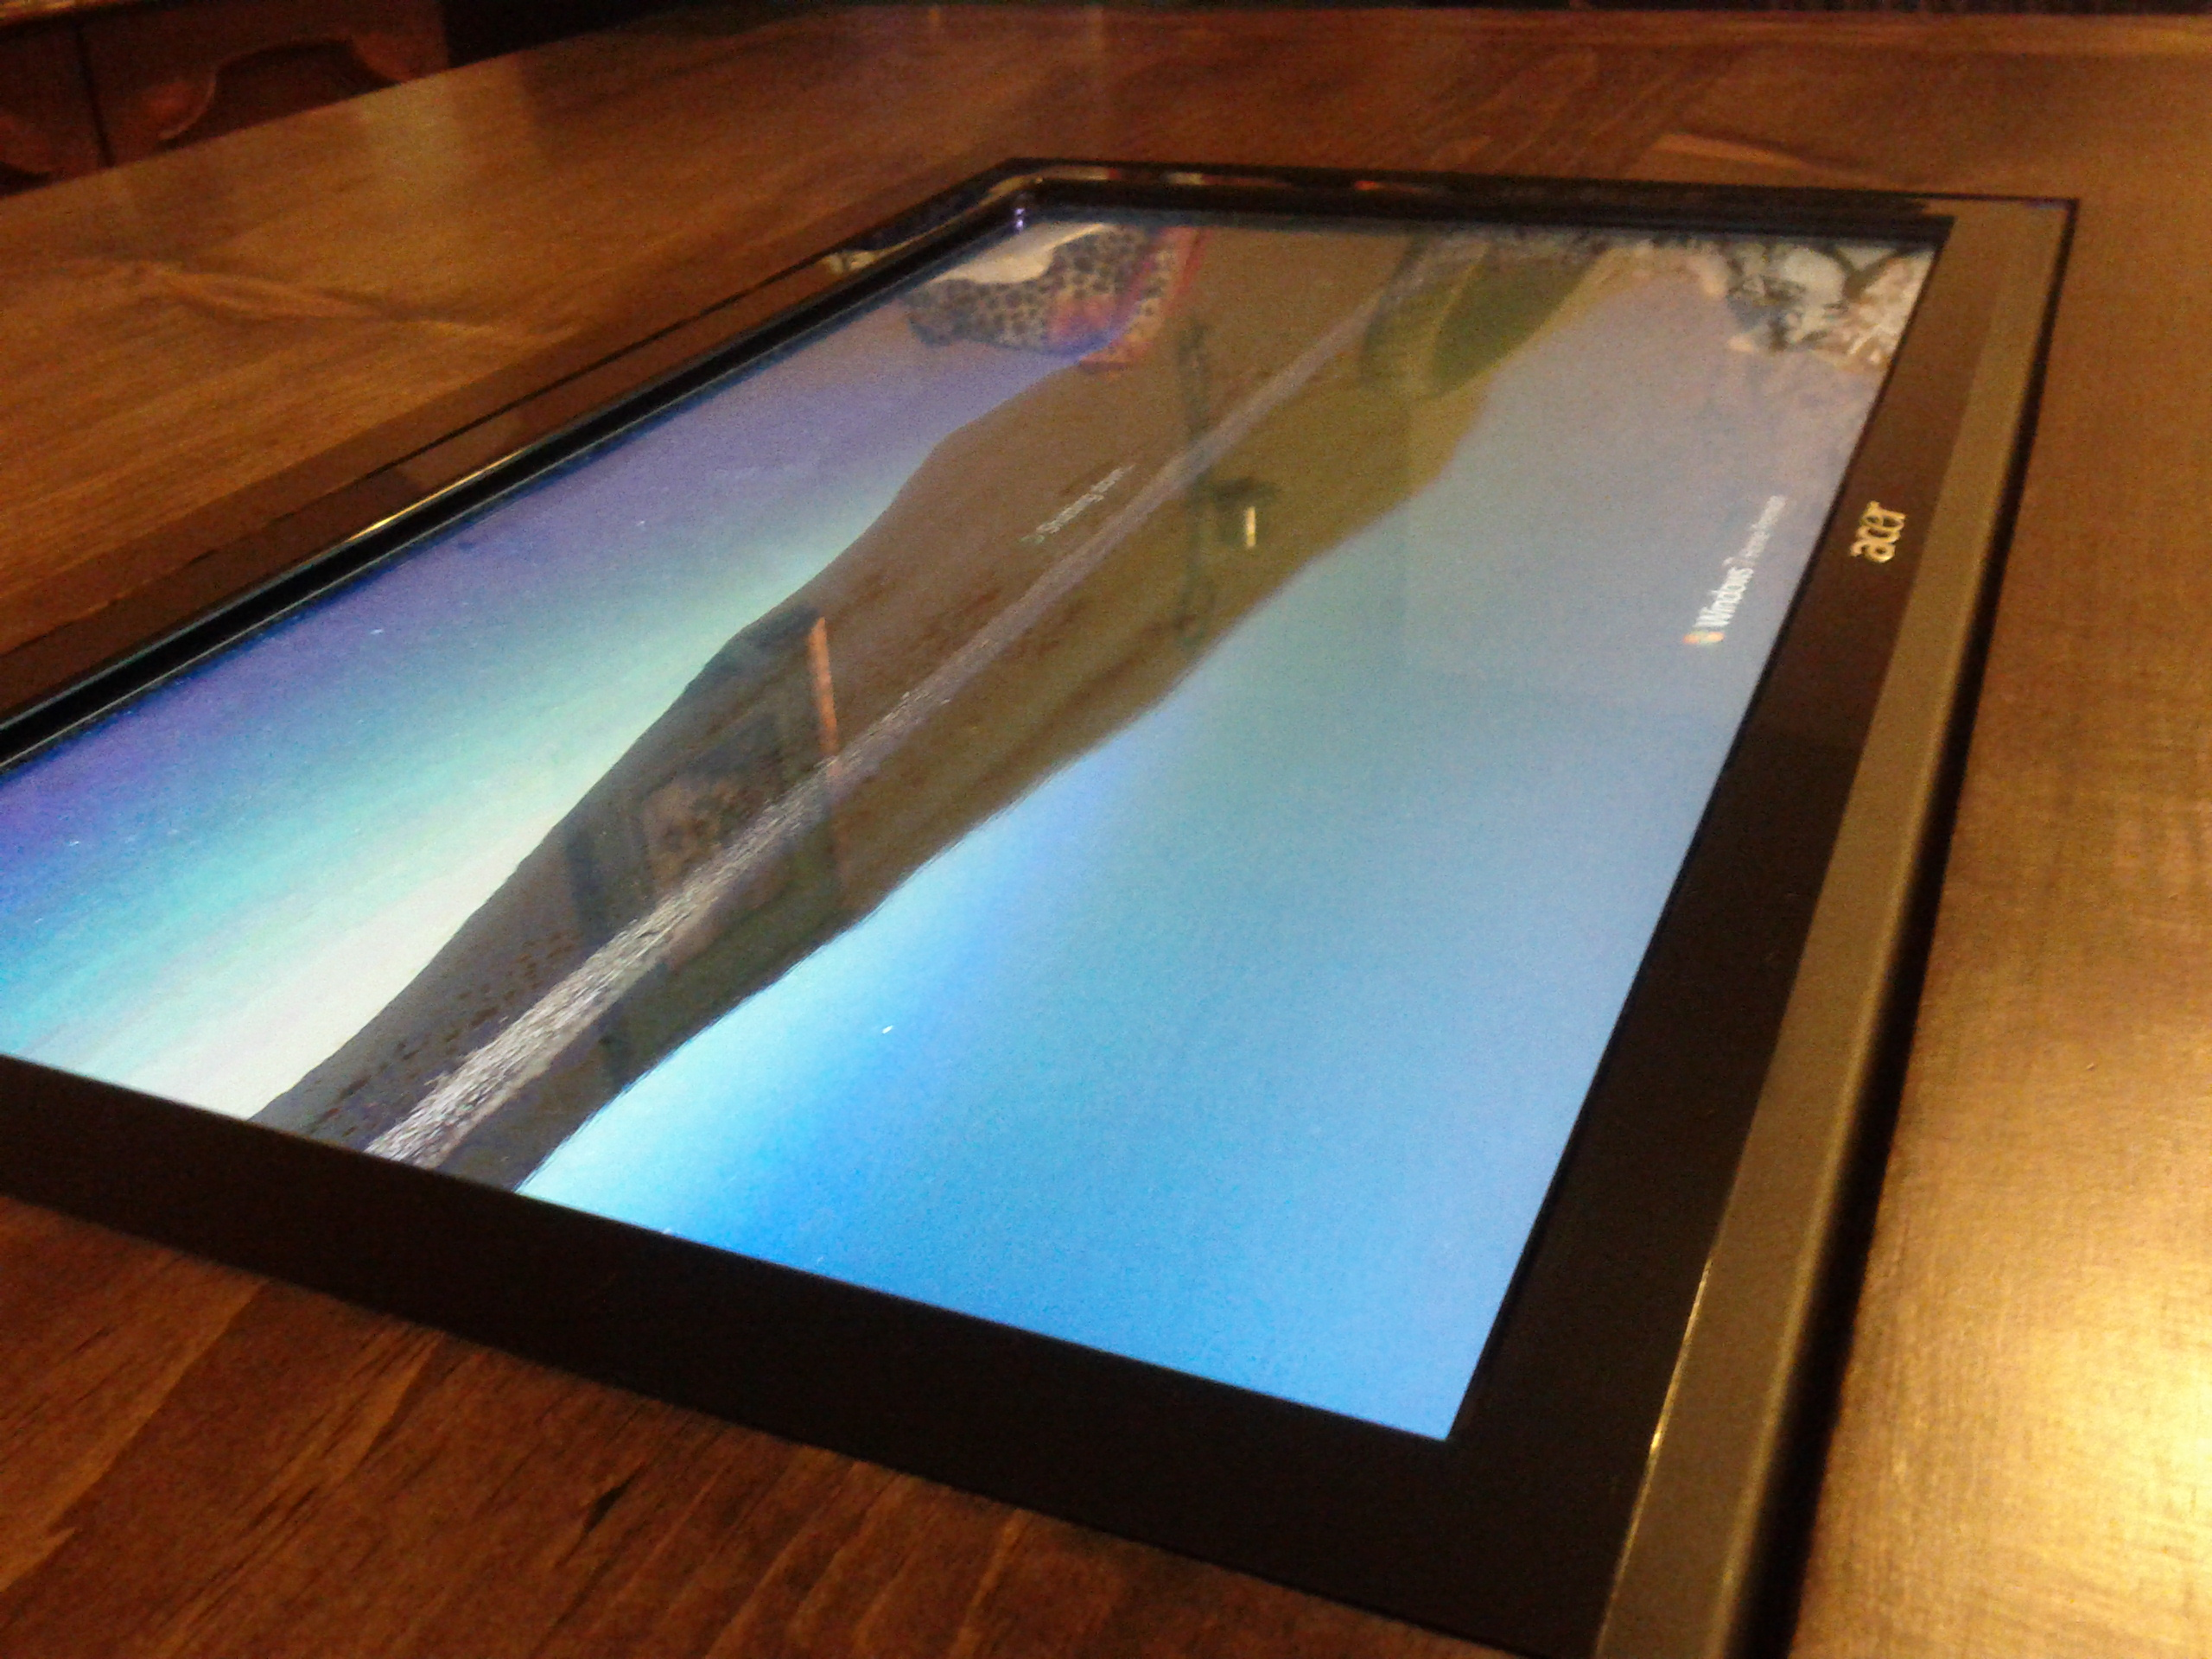 Coffee table with built in touch screen